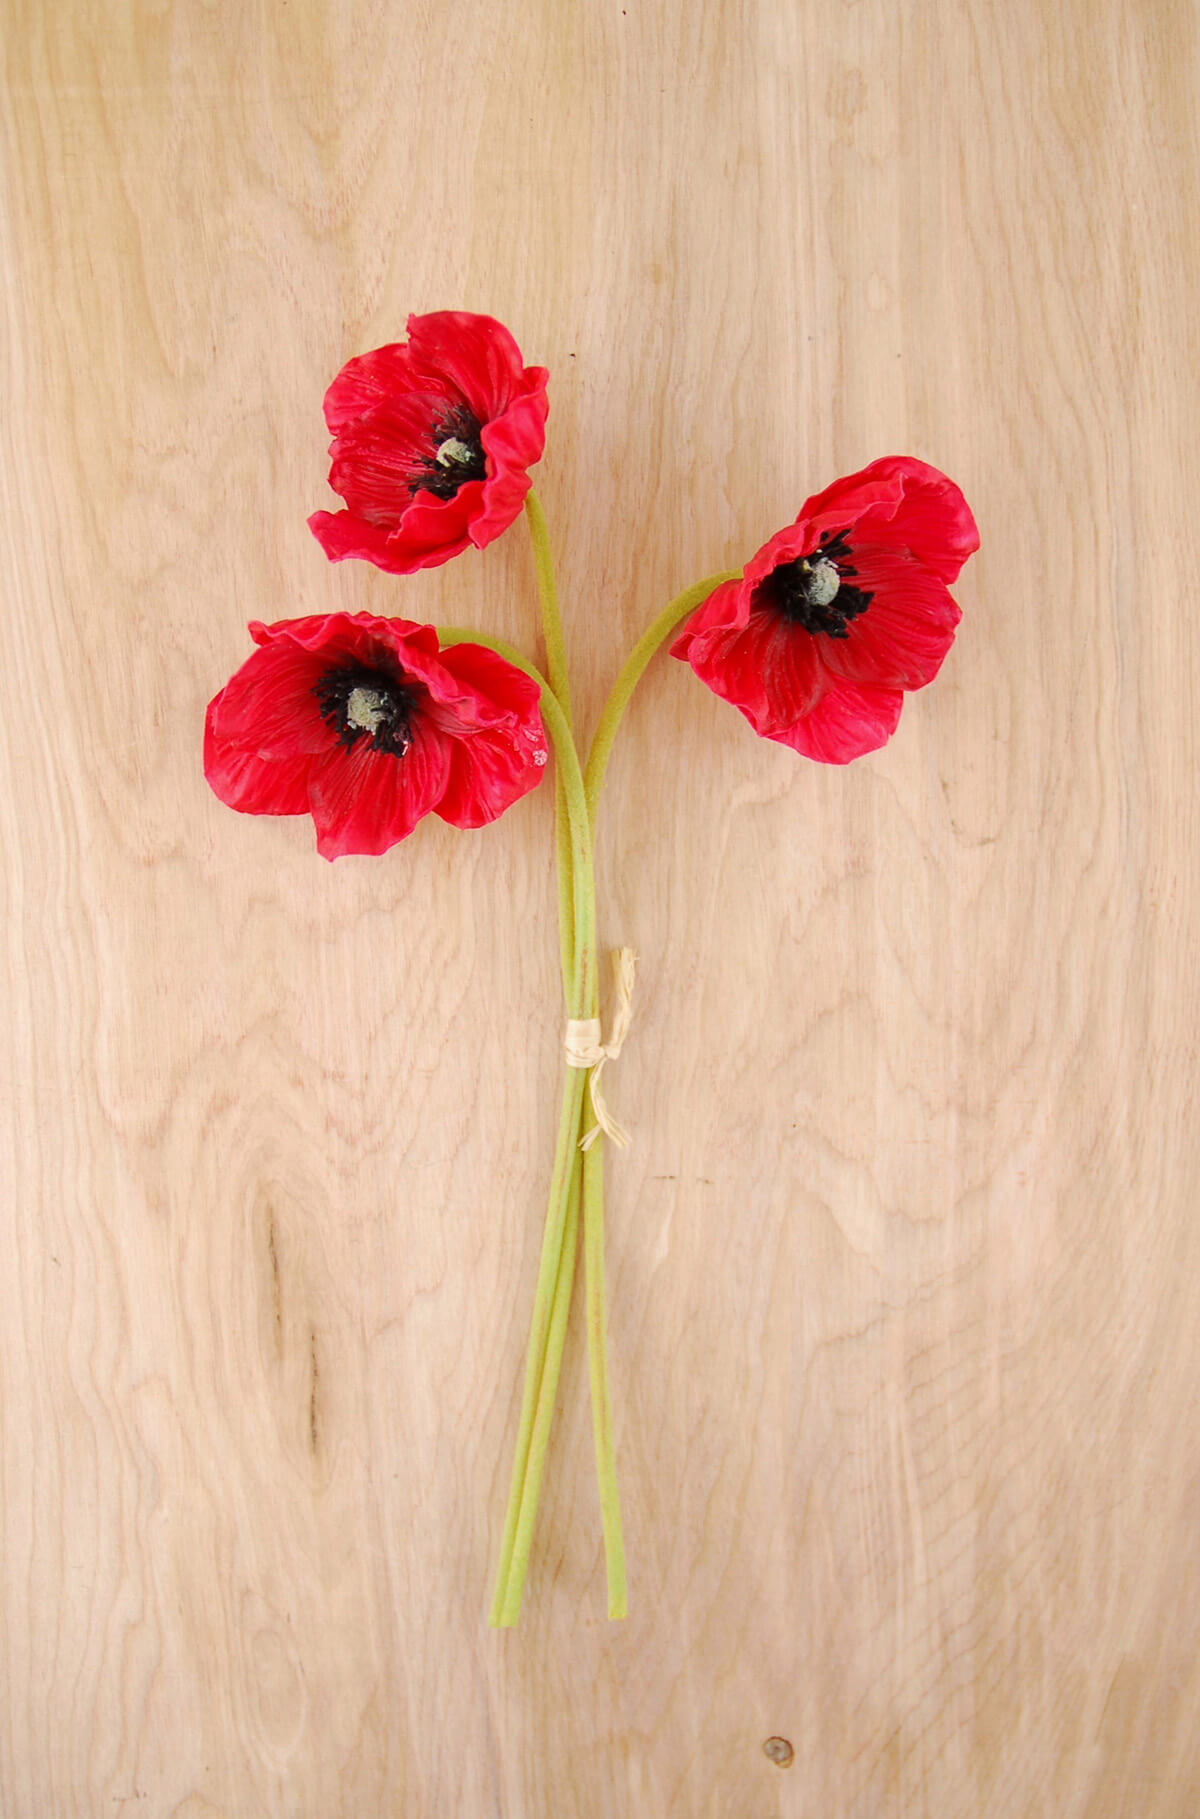 Red natural touch poppy flowers 3 red natural touch poppy flowers mightylinksfo Gallery